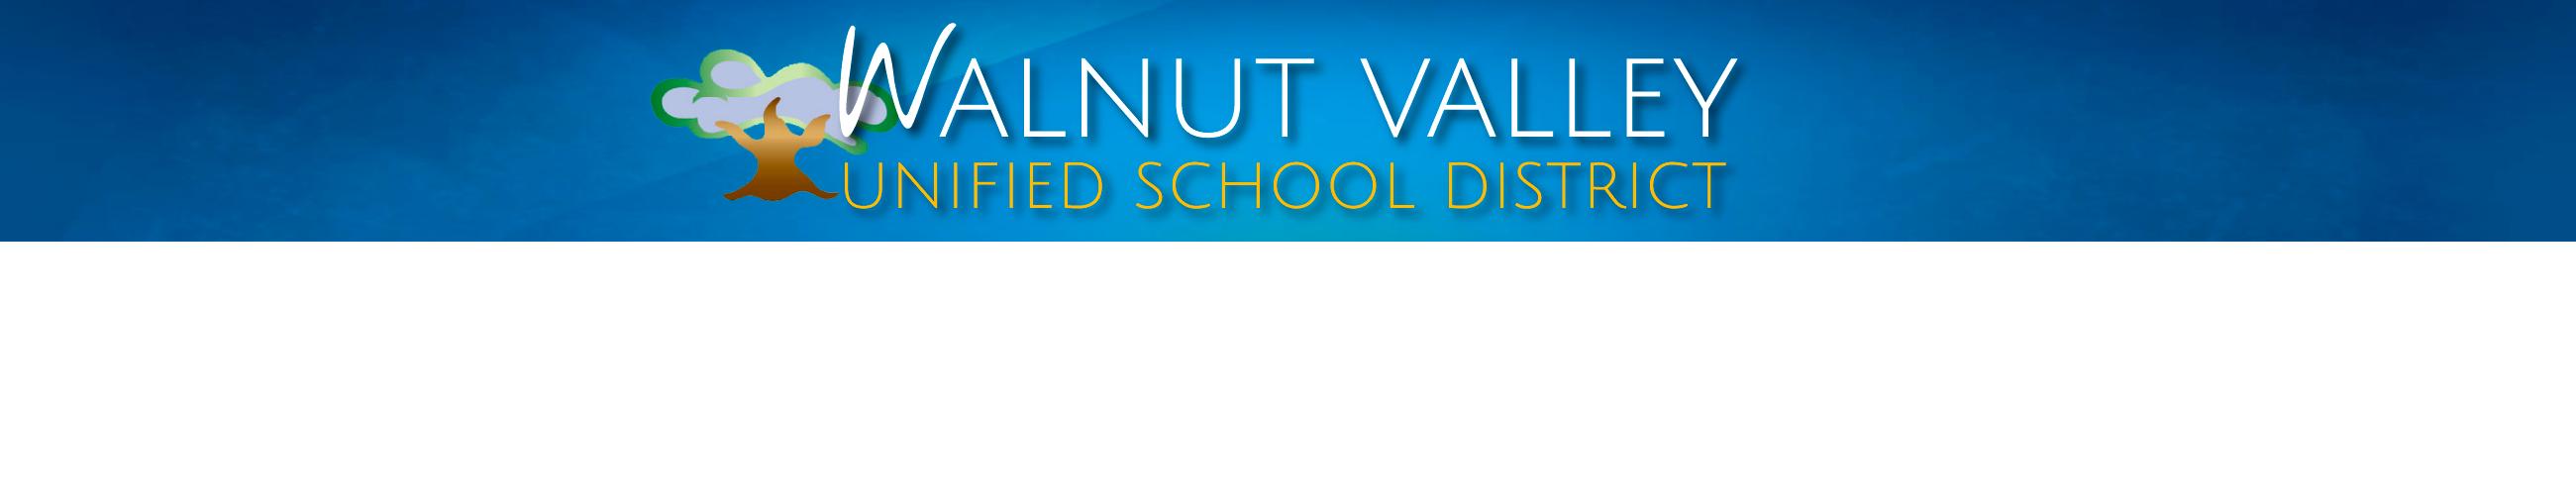 Walnut Valley Unified School District - School Nutrition And